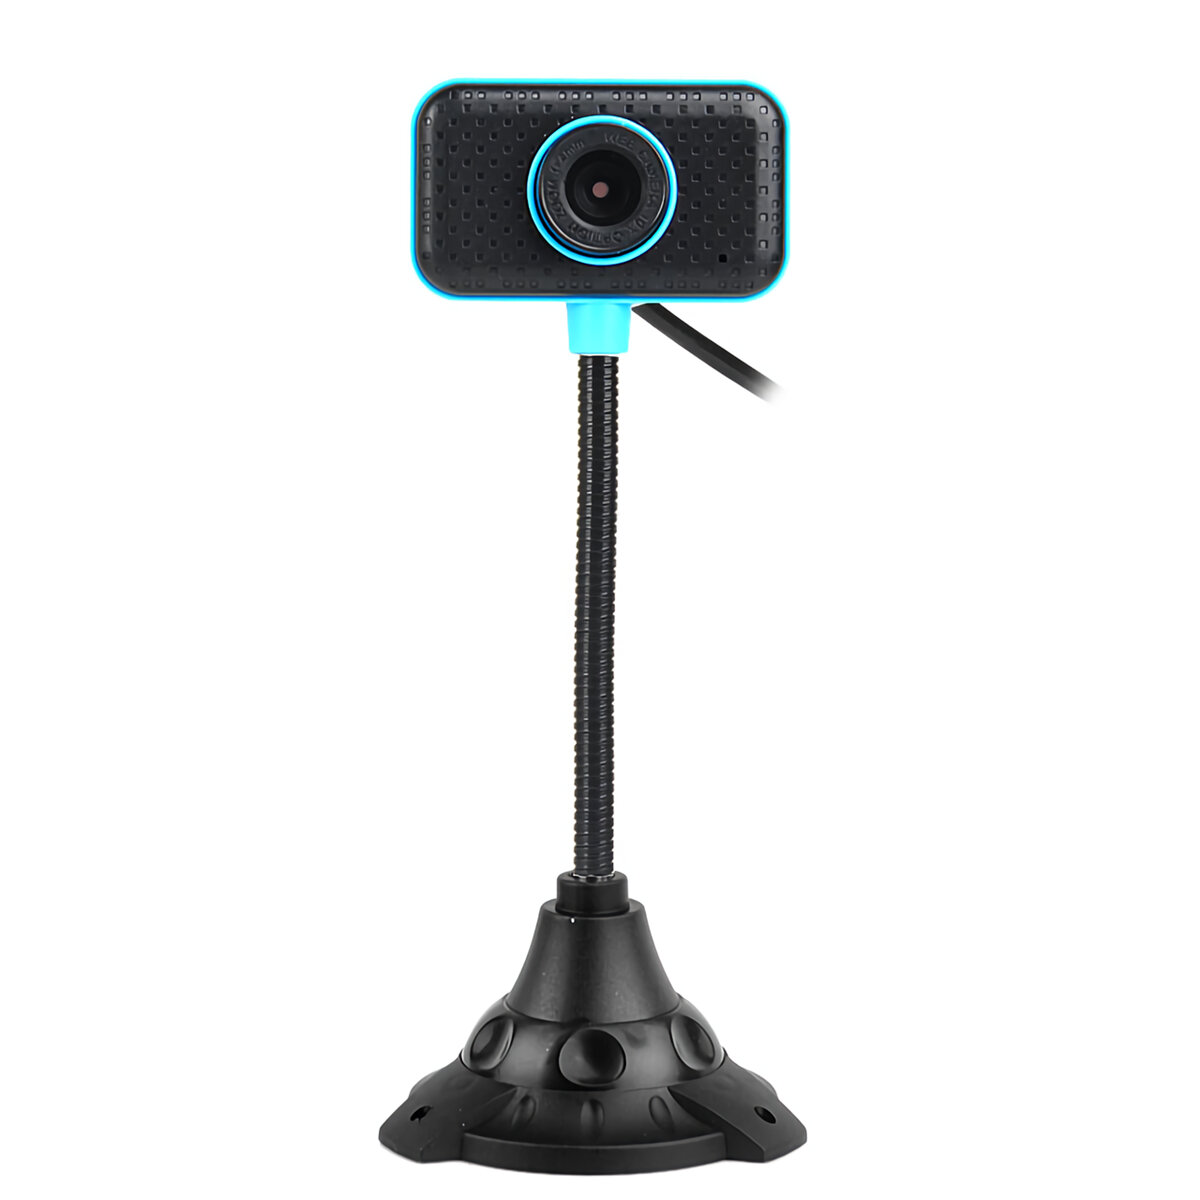 480P HD Webcam CMOS 30FPS 0.45 Million Pixels USB 2.0 USB Drive-free Camera Video Call Webcam with Microphone for Desktop Computer Notebook PC